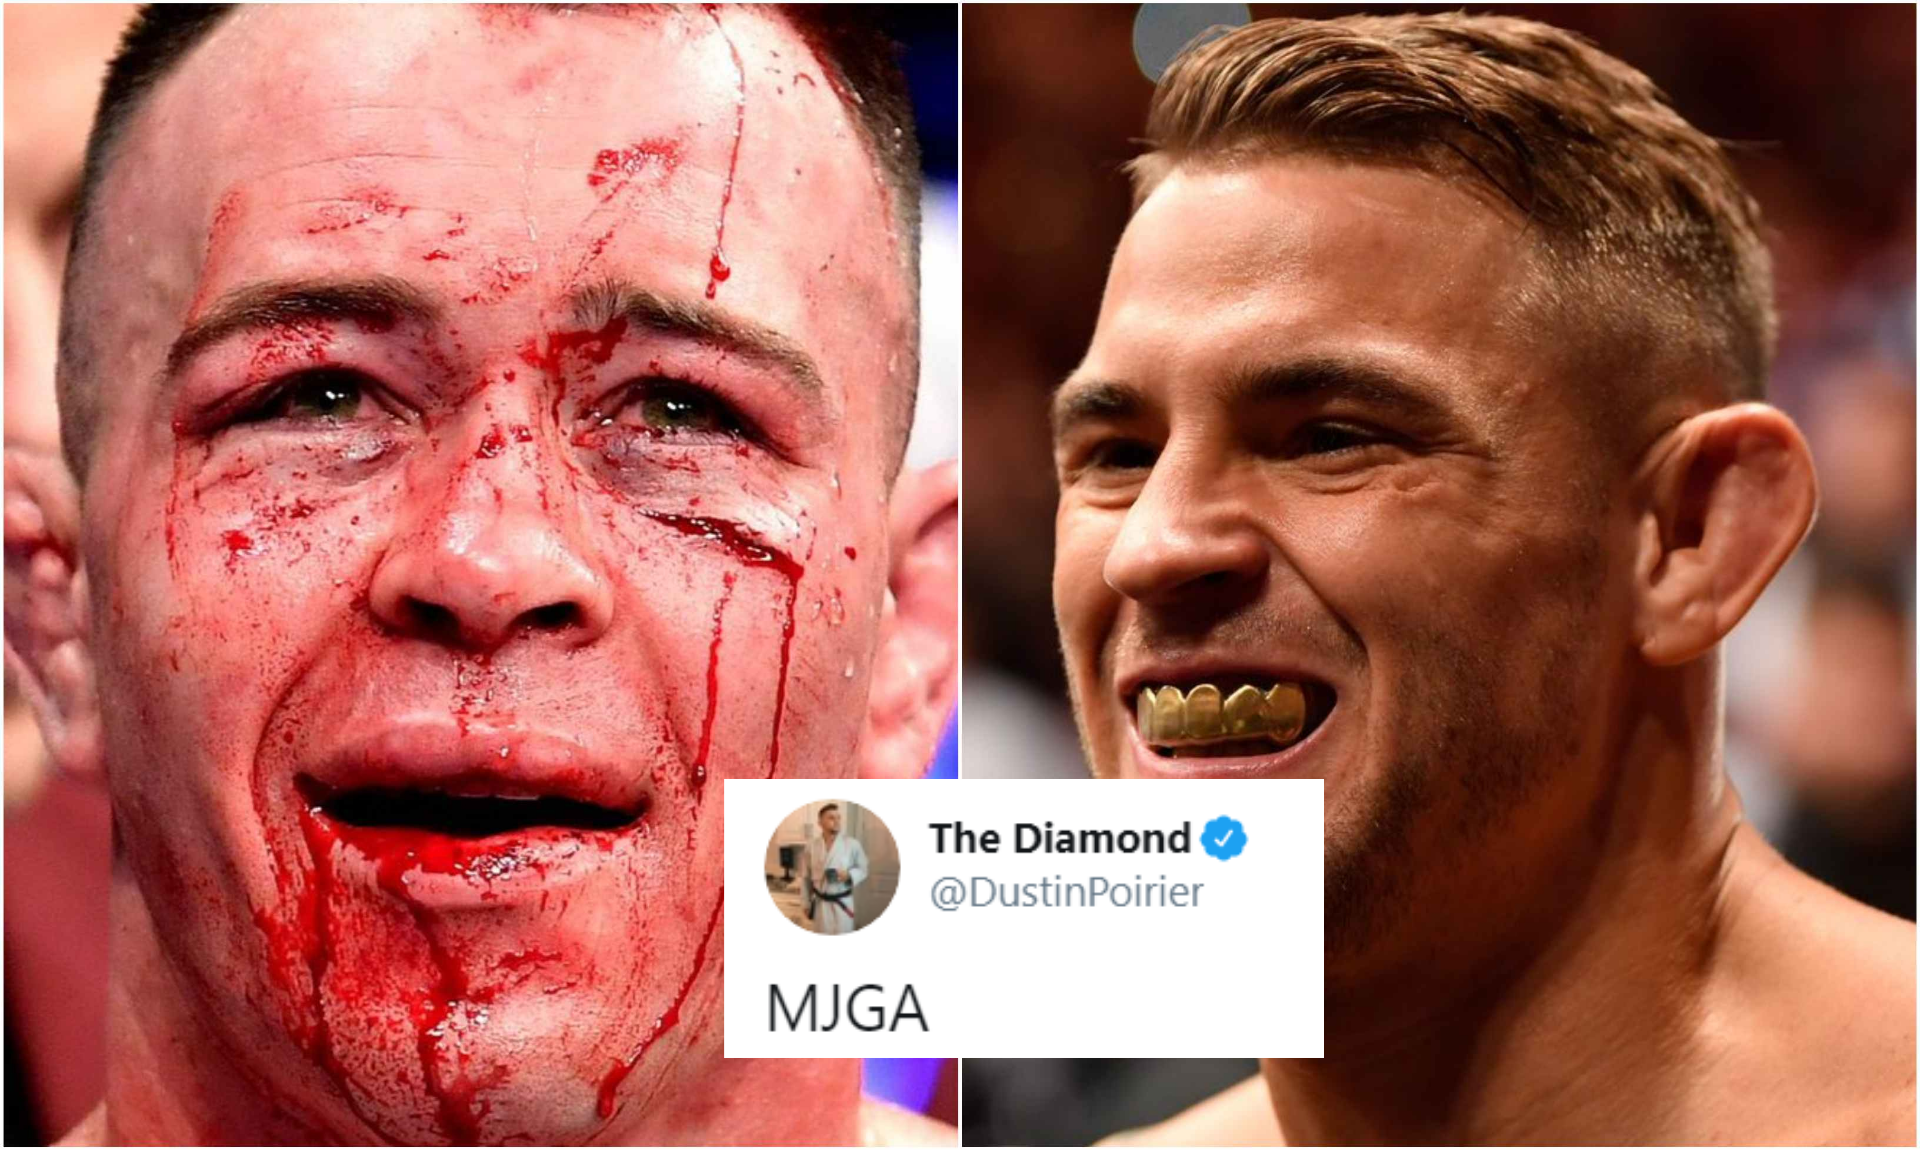 Dustin Poirier references Colby Covington's broken jaw in troll tweet after UFC 245 - Dustin